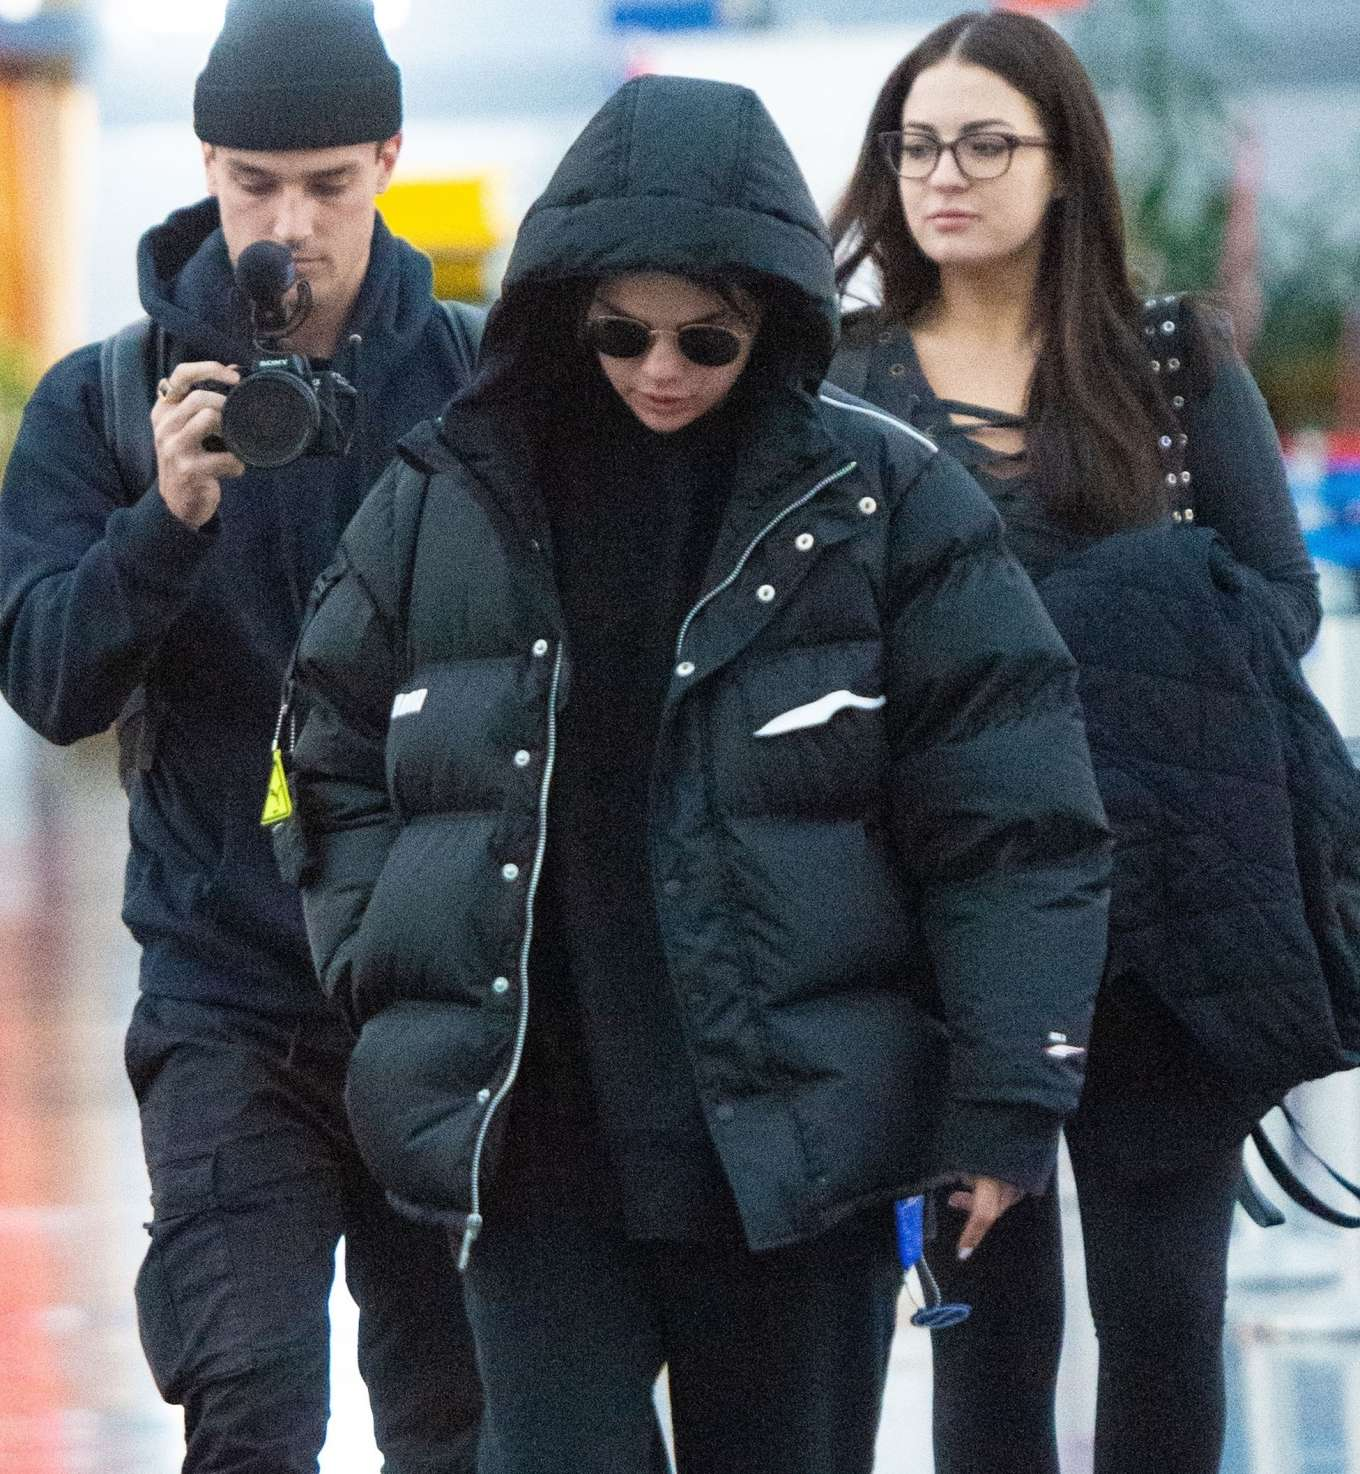 Selena Gomez, Puma jacket, black jacket, nylon, white Puma sneakers, black hoodie, hip length, extra long sleeves, front zip, oversized, black sunglasses, concealed button. Selena Gomez donning a oversized black nylon puffer jacket with extra long sleeves and concealed button